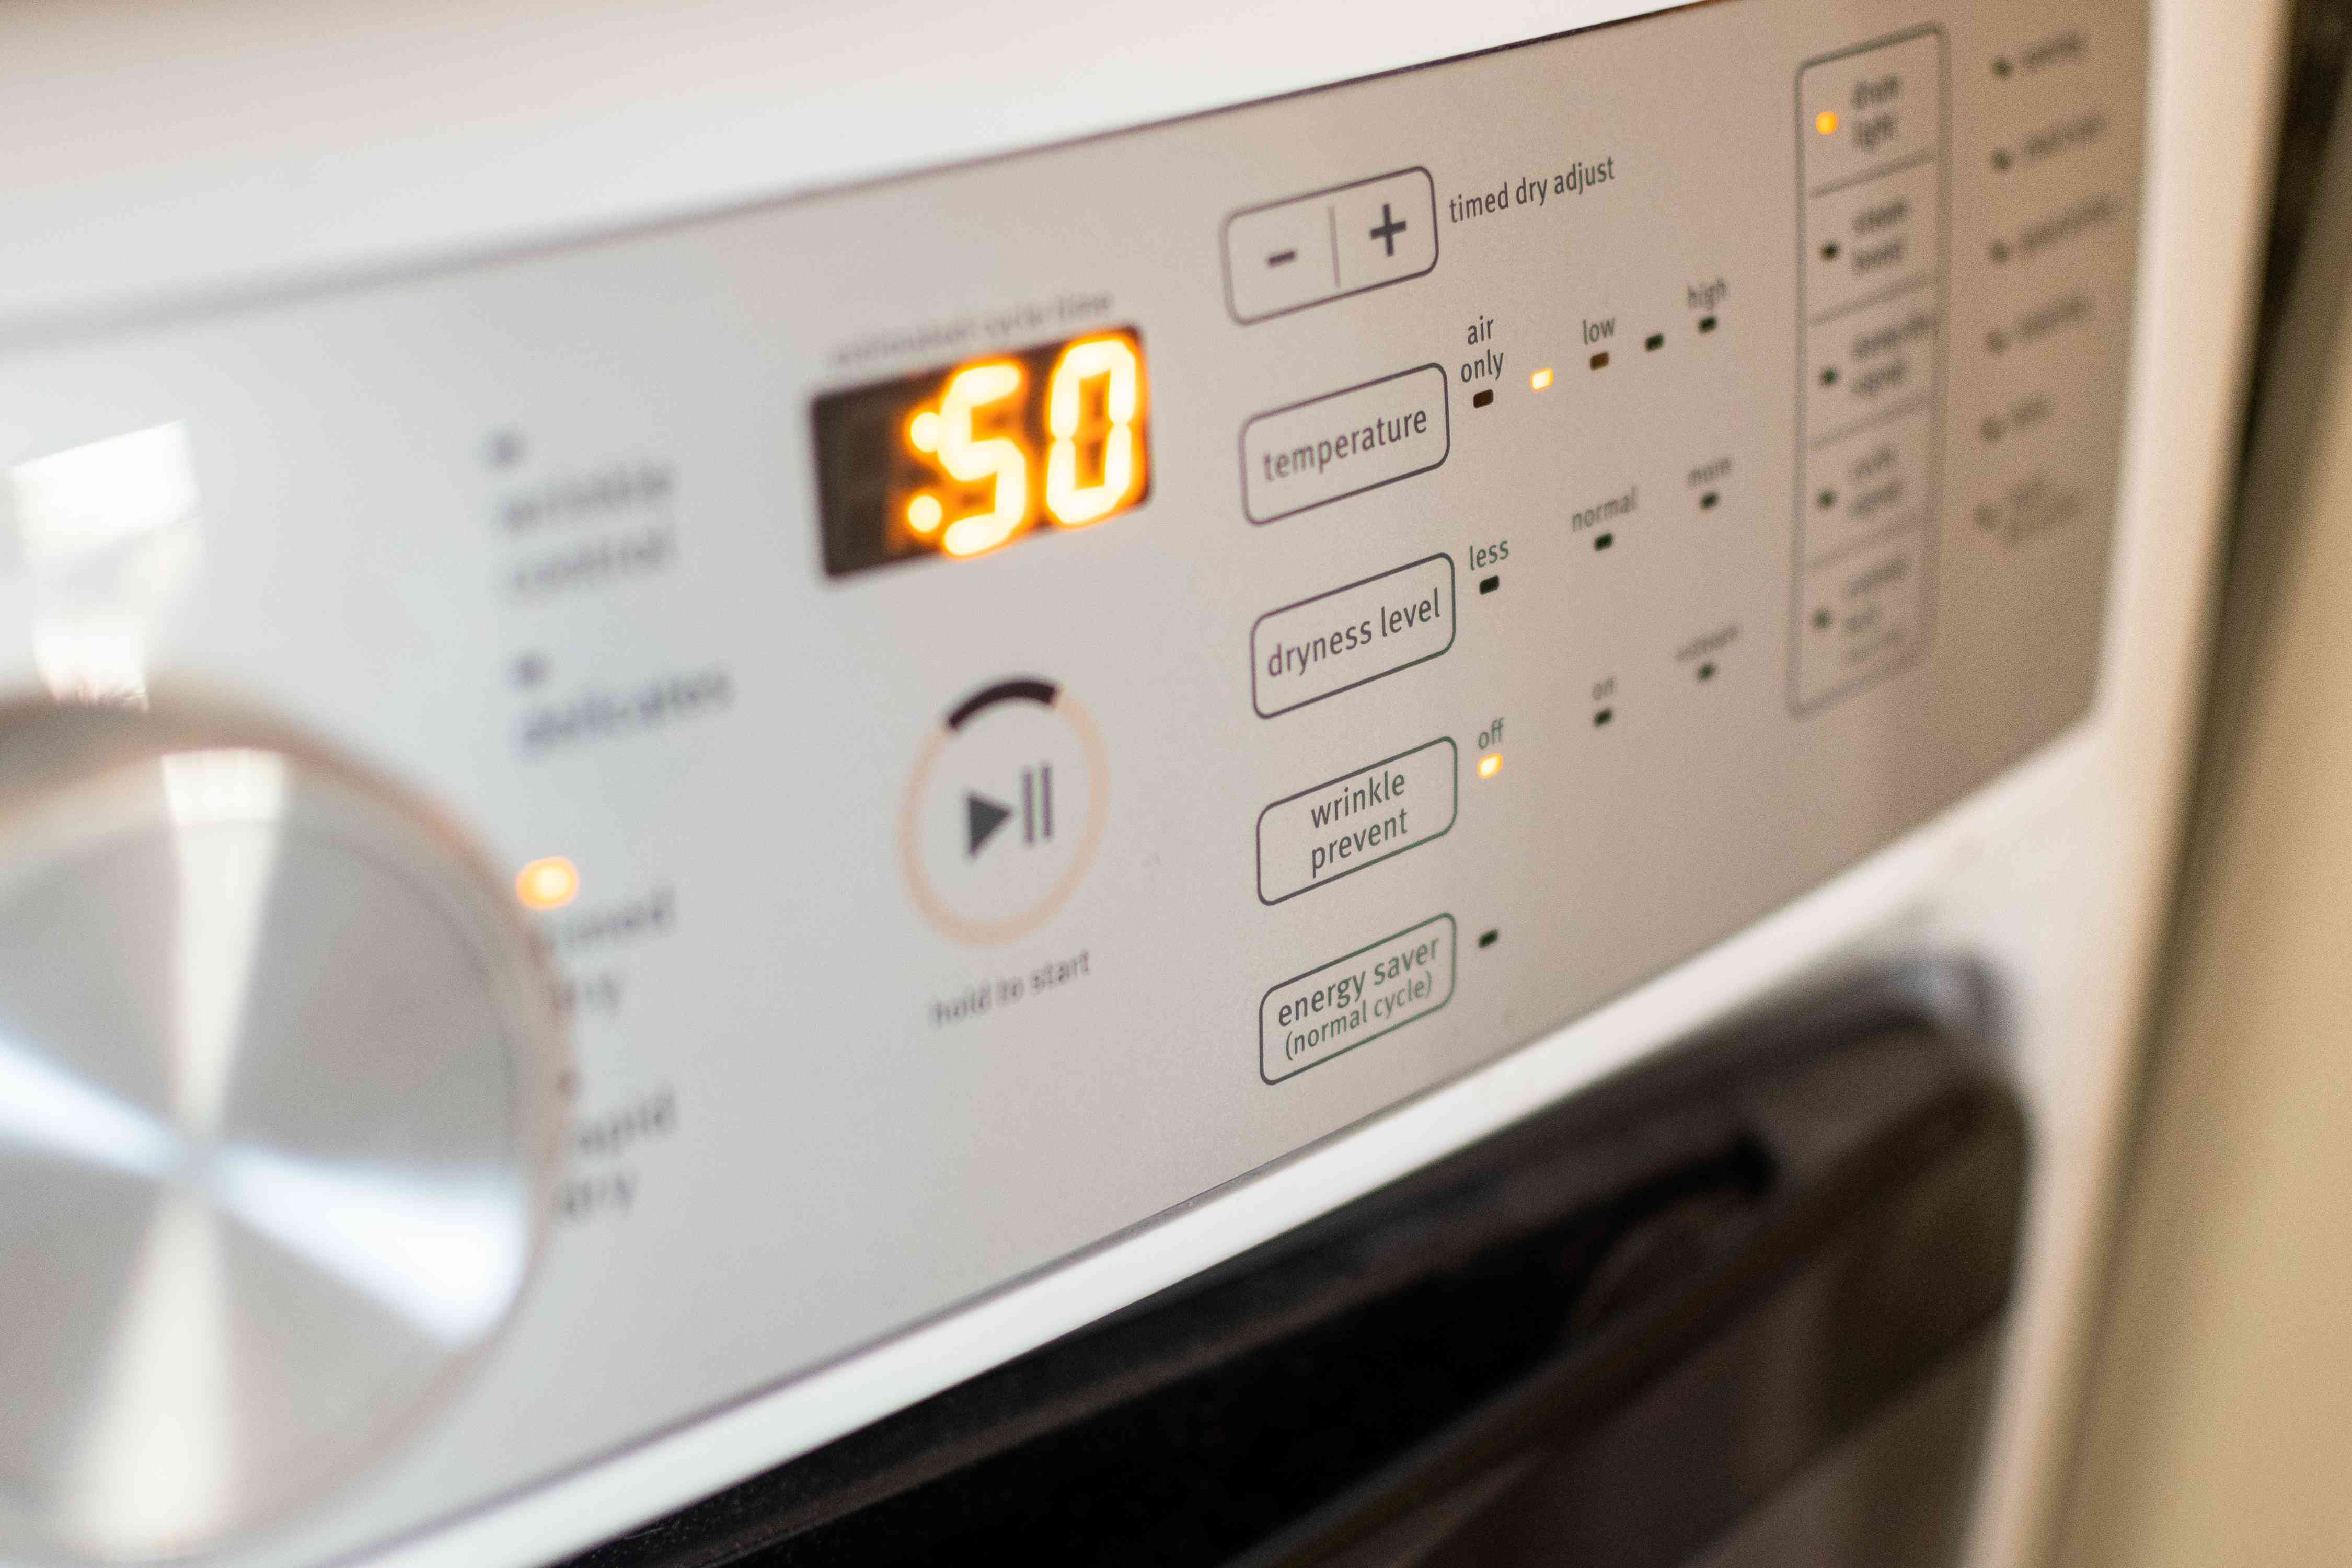 Drying machine set to low heat for down coats